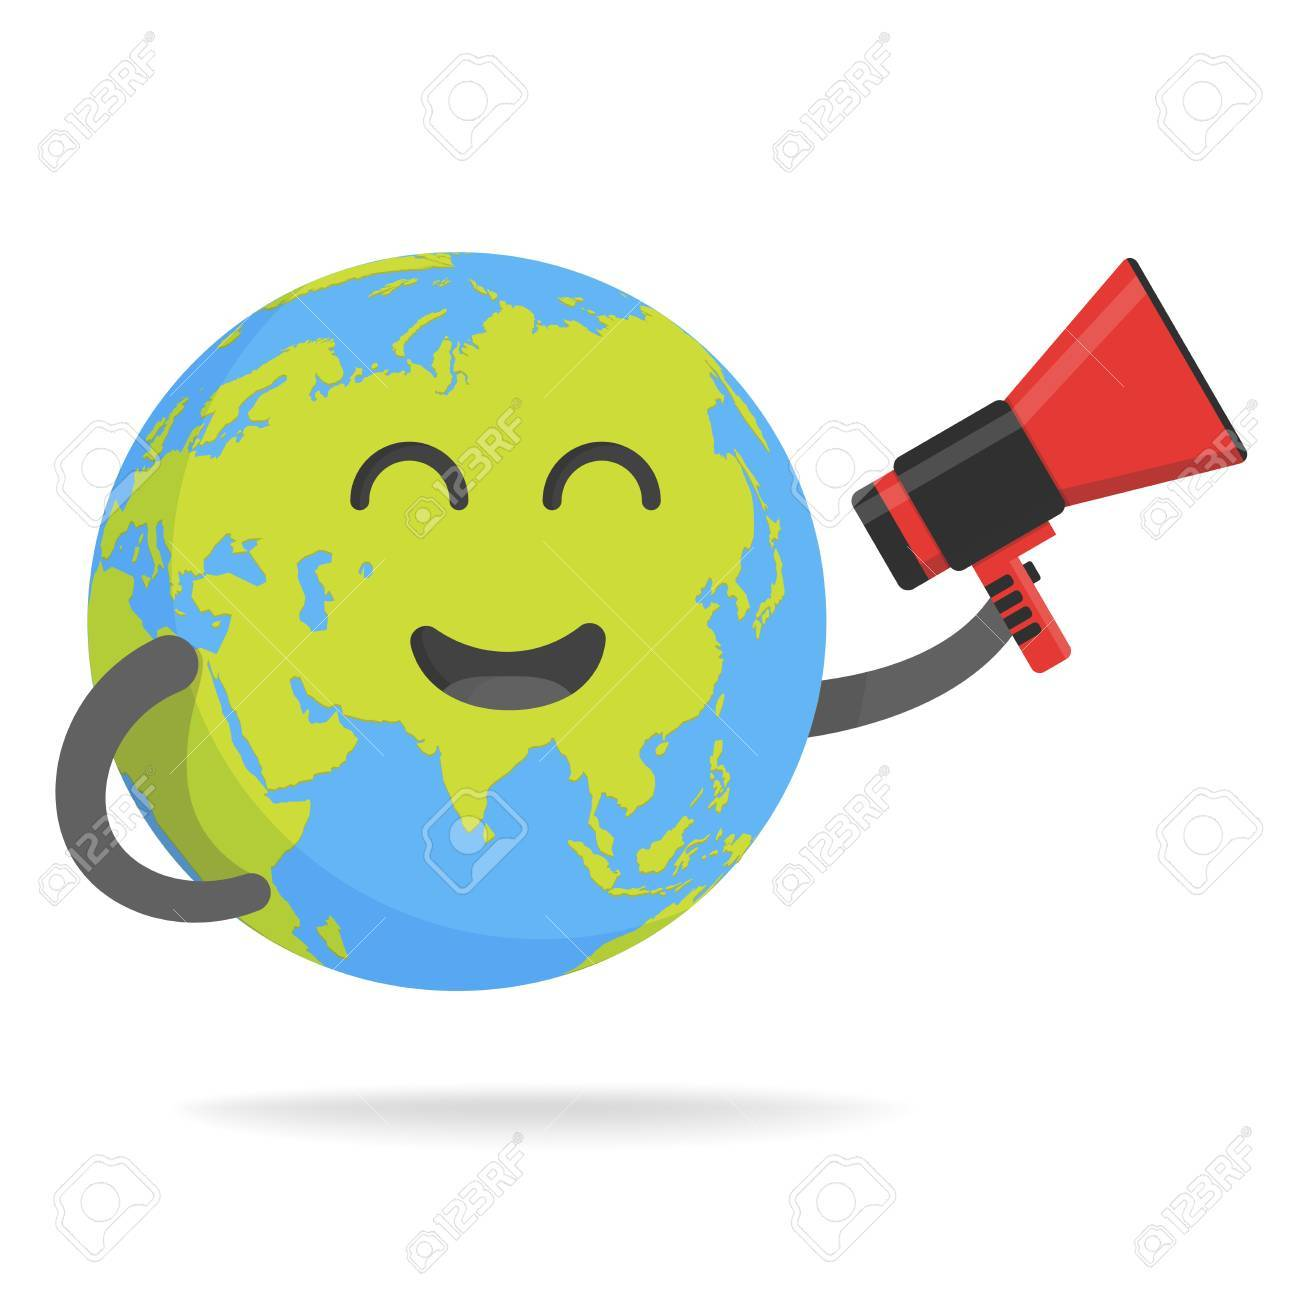 Cute cartoon earth character world map globe with smiley face cute cartoon earth character world map globe with smiley face and hands vector illustration stock sciox Images